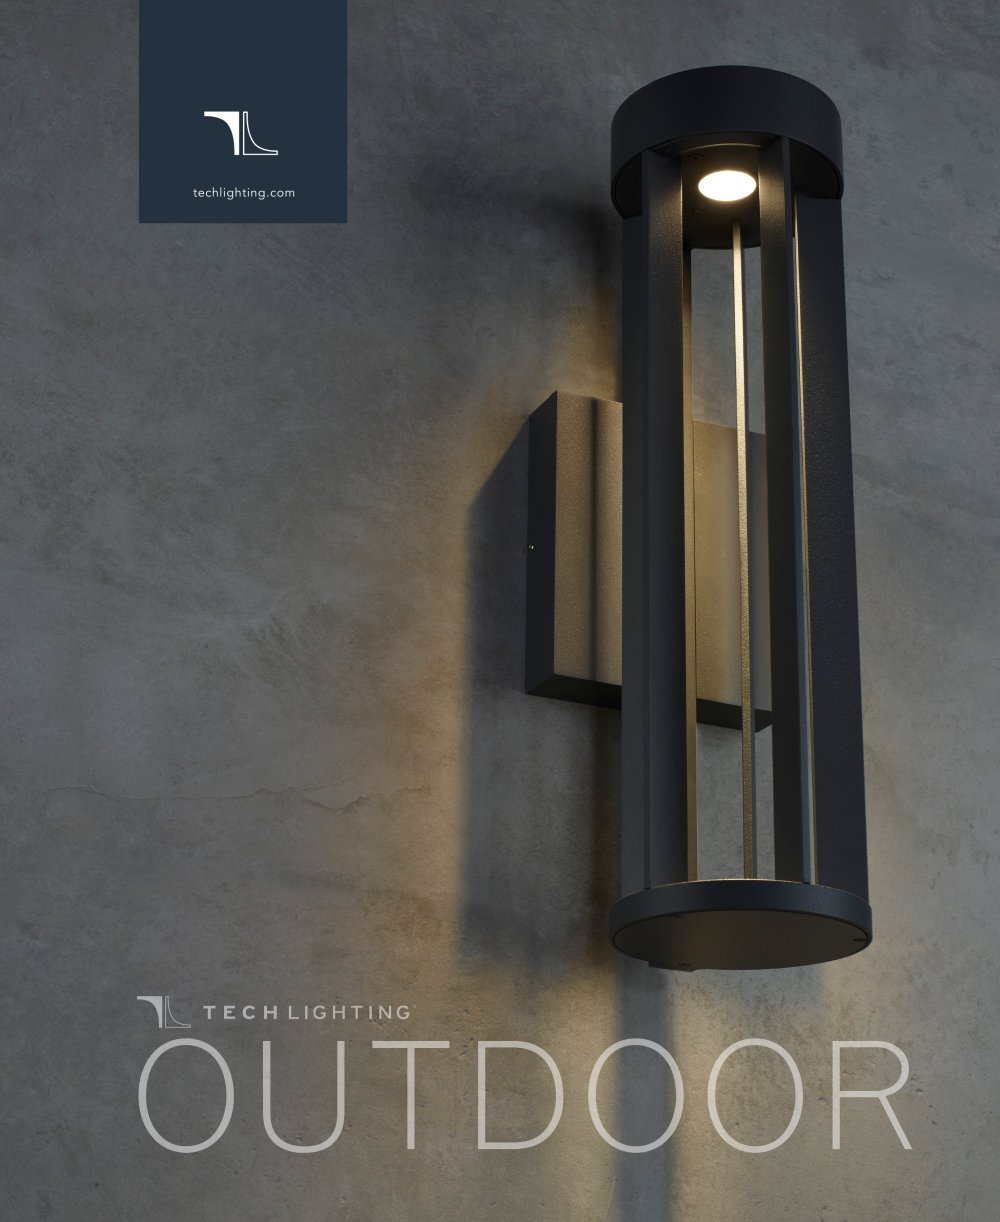 2017 Tech Lighting Outdoor Catalog 1 100 Pages